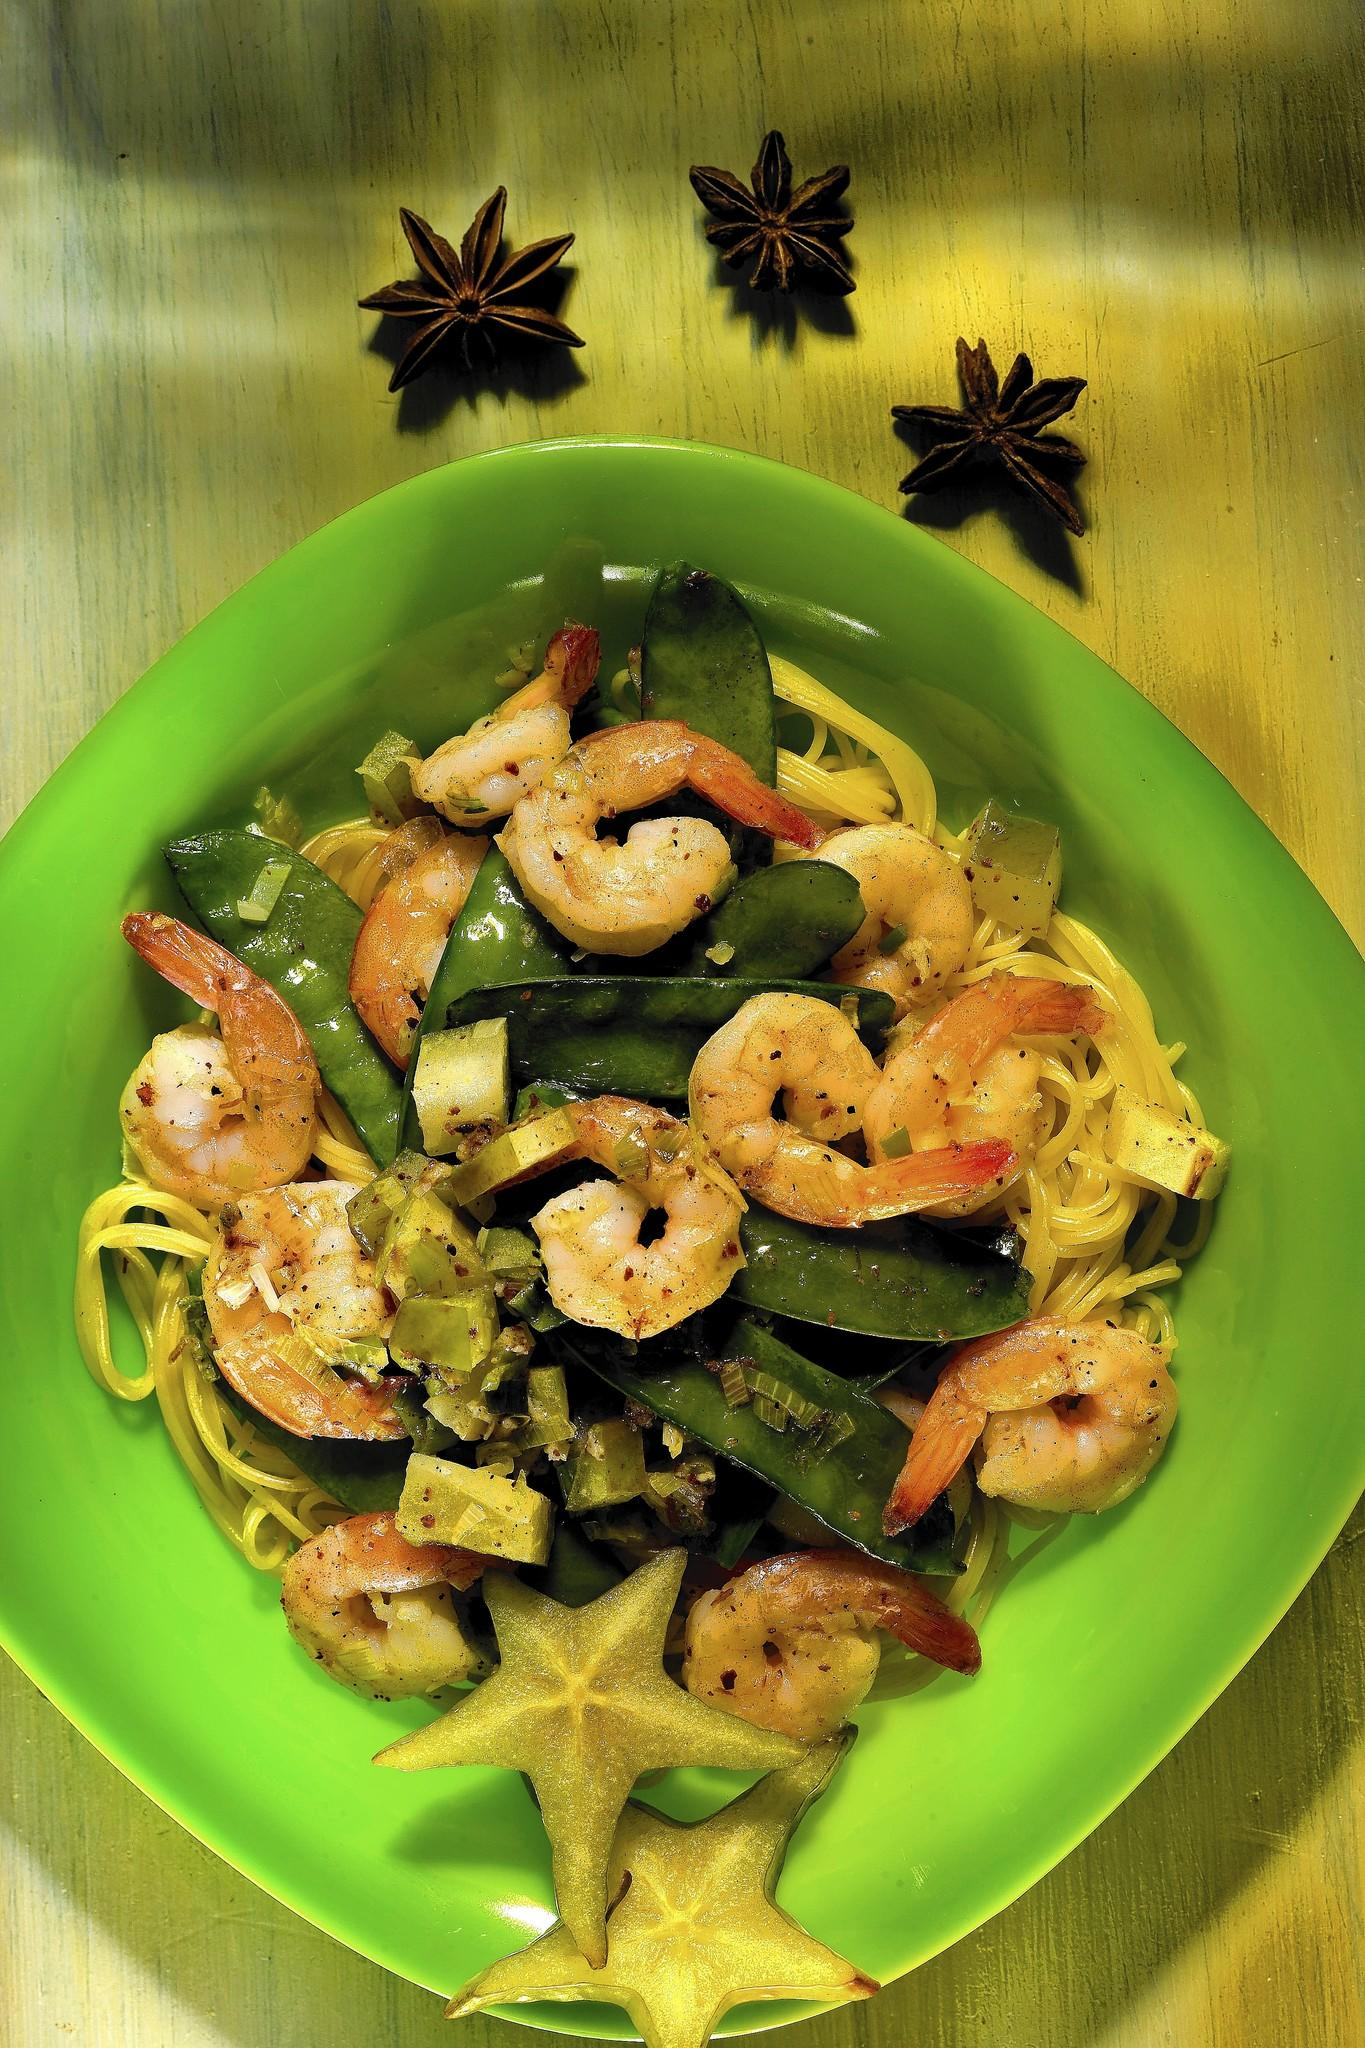 Finished star-struck shrimp with angel hair recipe.